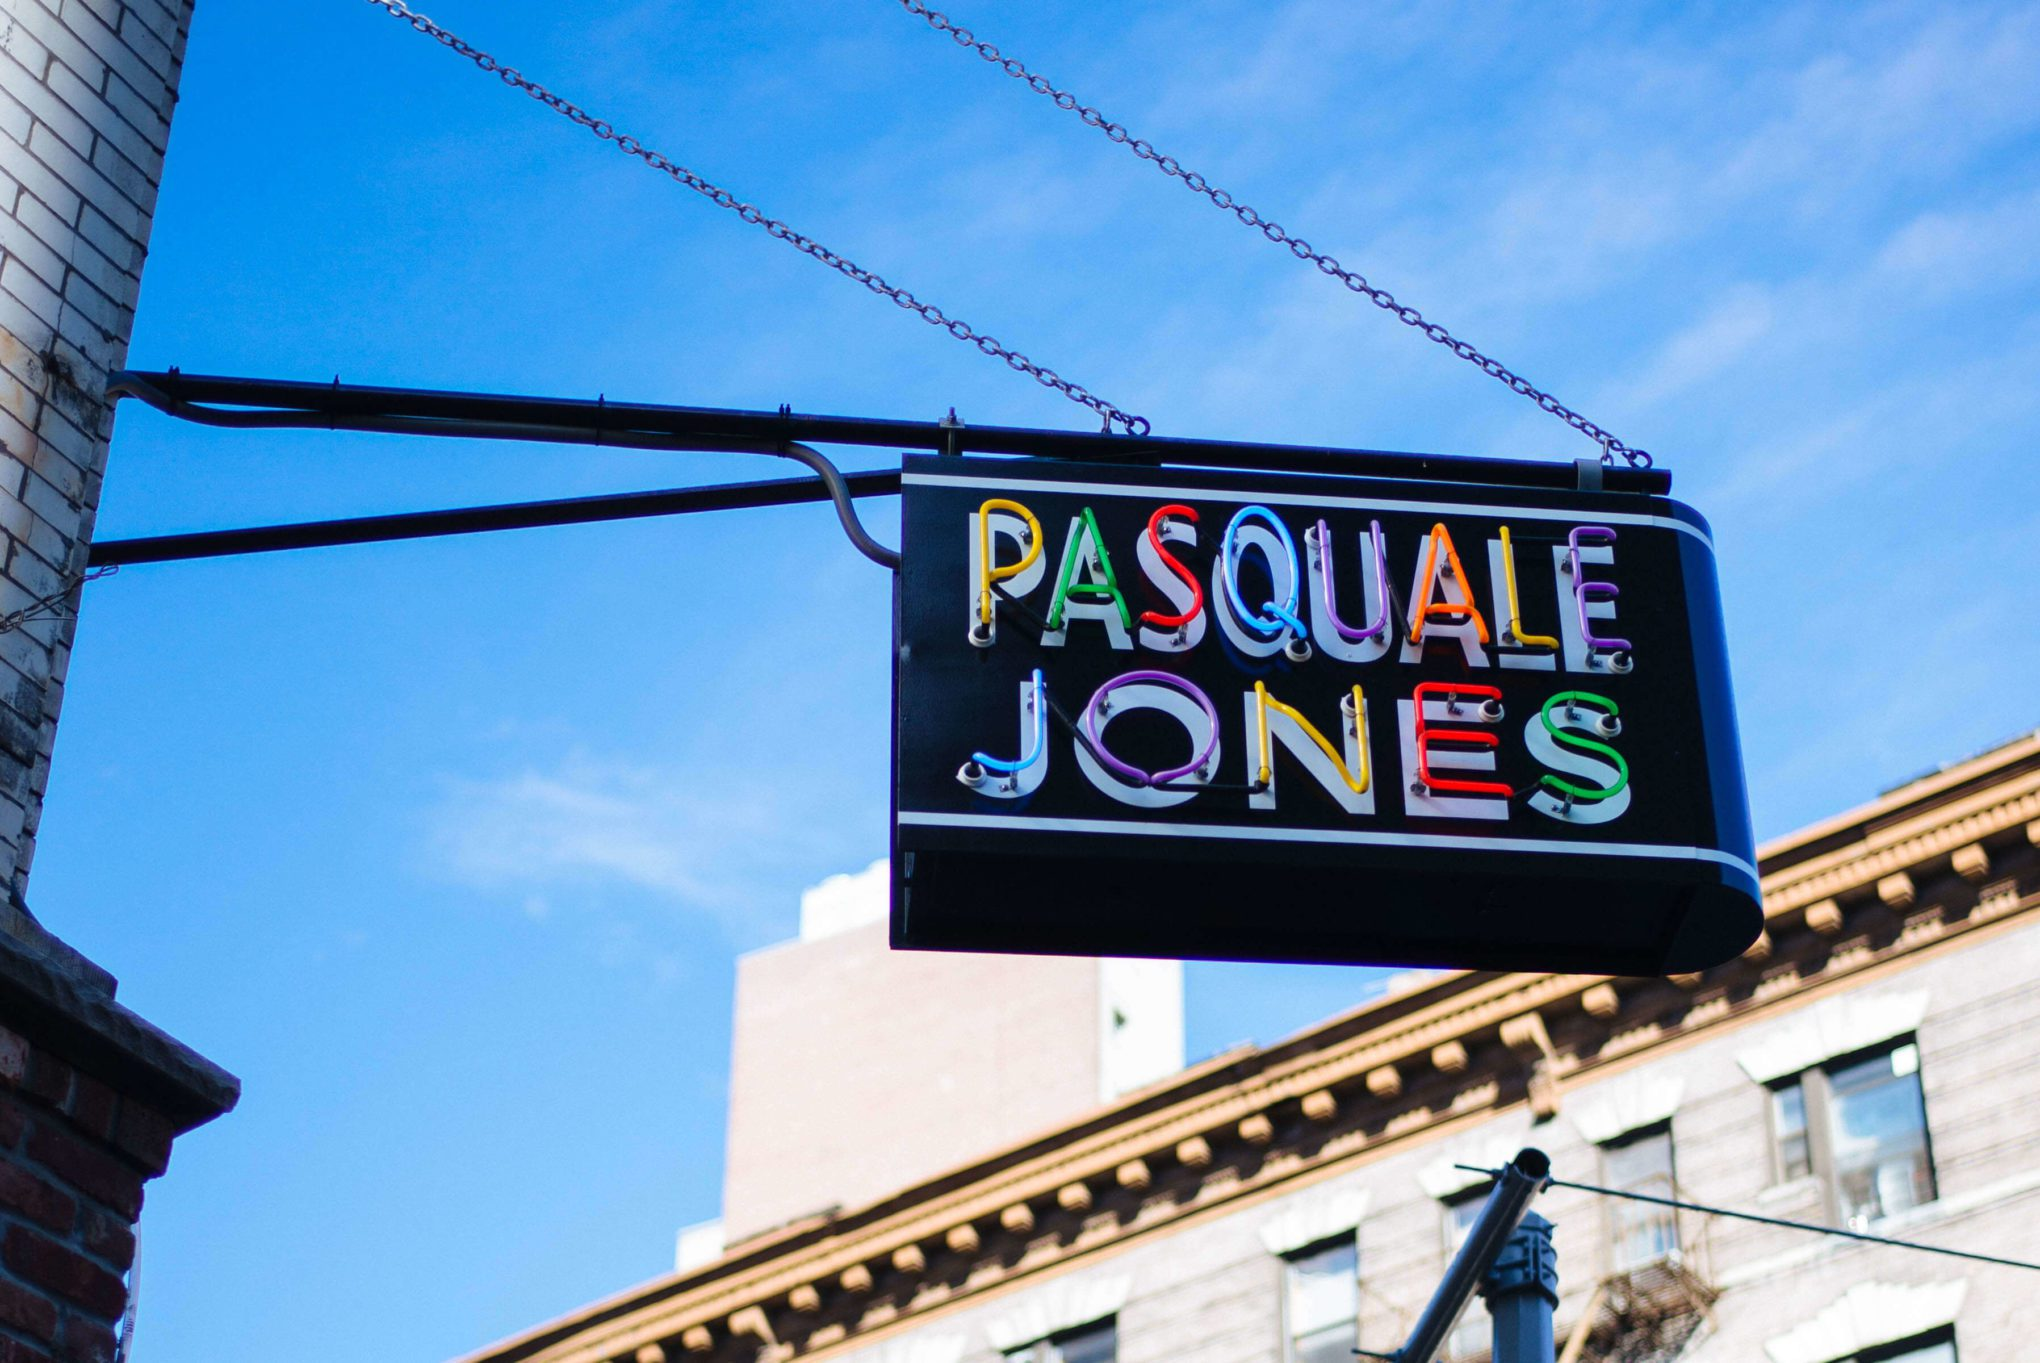 Pasquale Jones has some of the best pizza in Soho - try their wood fired pizza